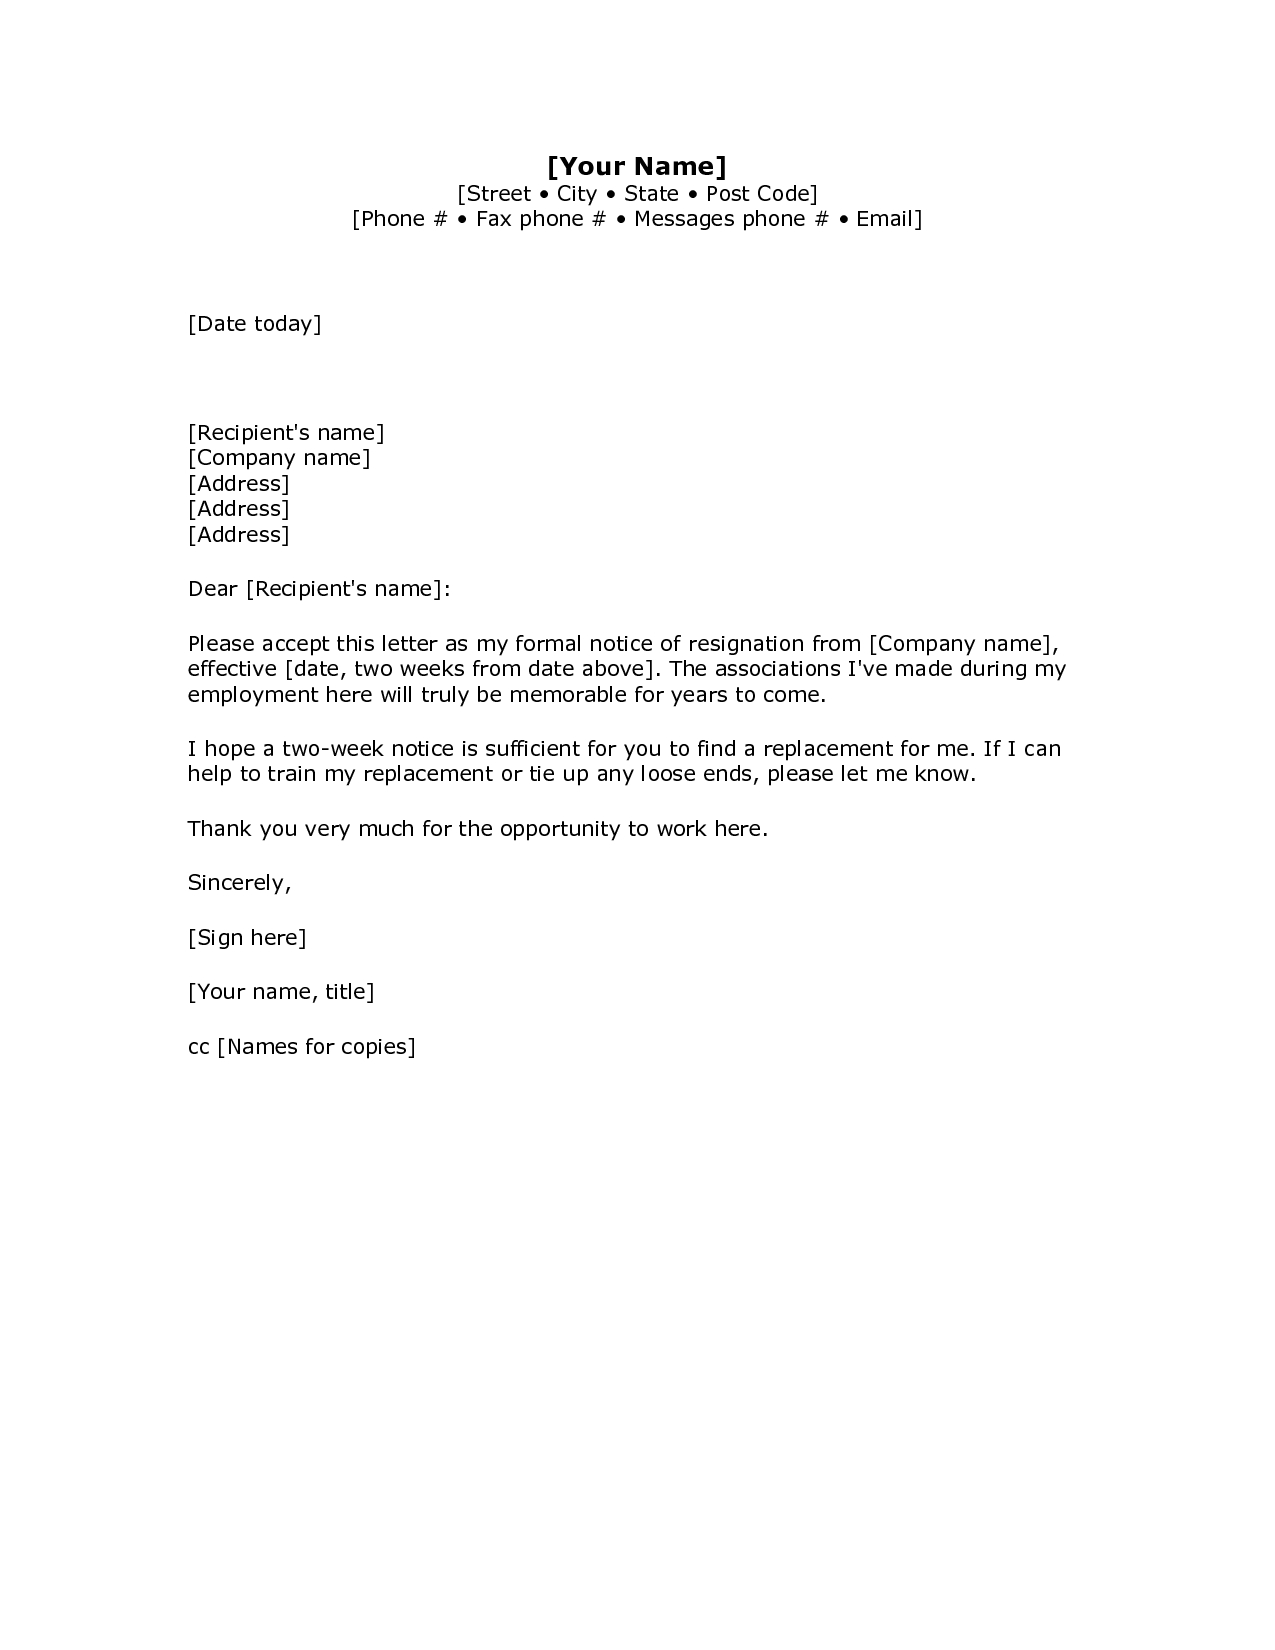 Cease and Desist Contact Letter Template - 2 Weeks Notice Letter Resignation Letter Week Notice Words Hdwriting